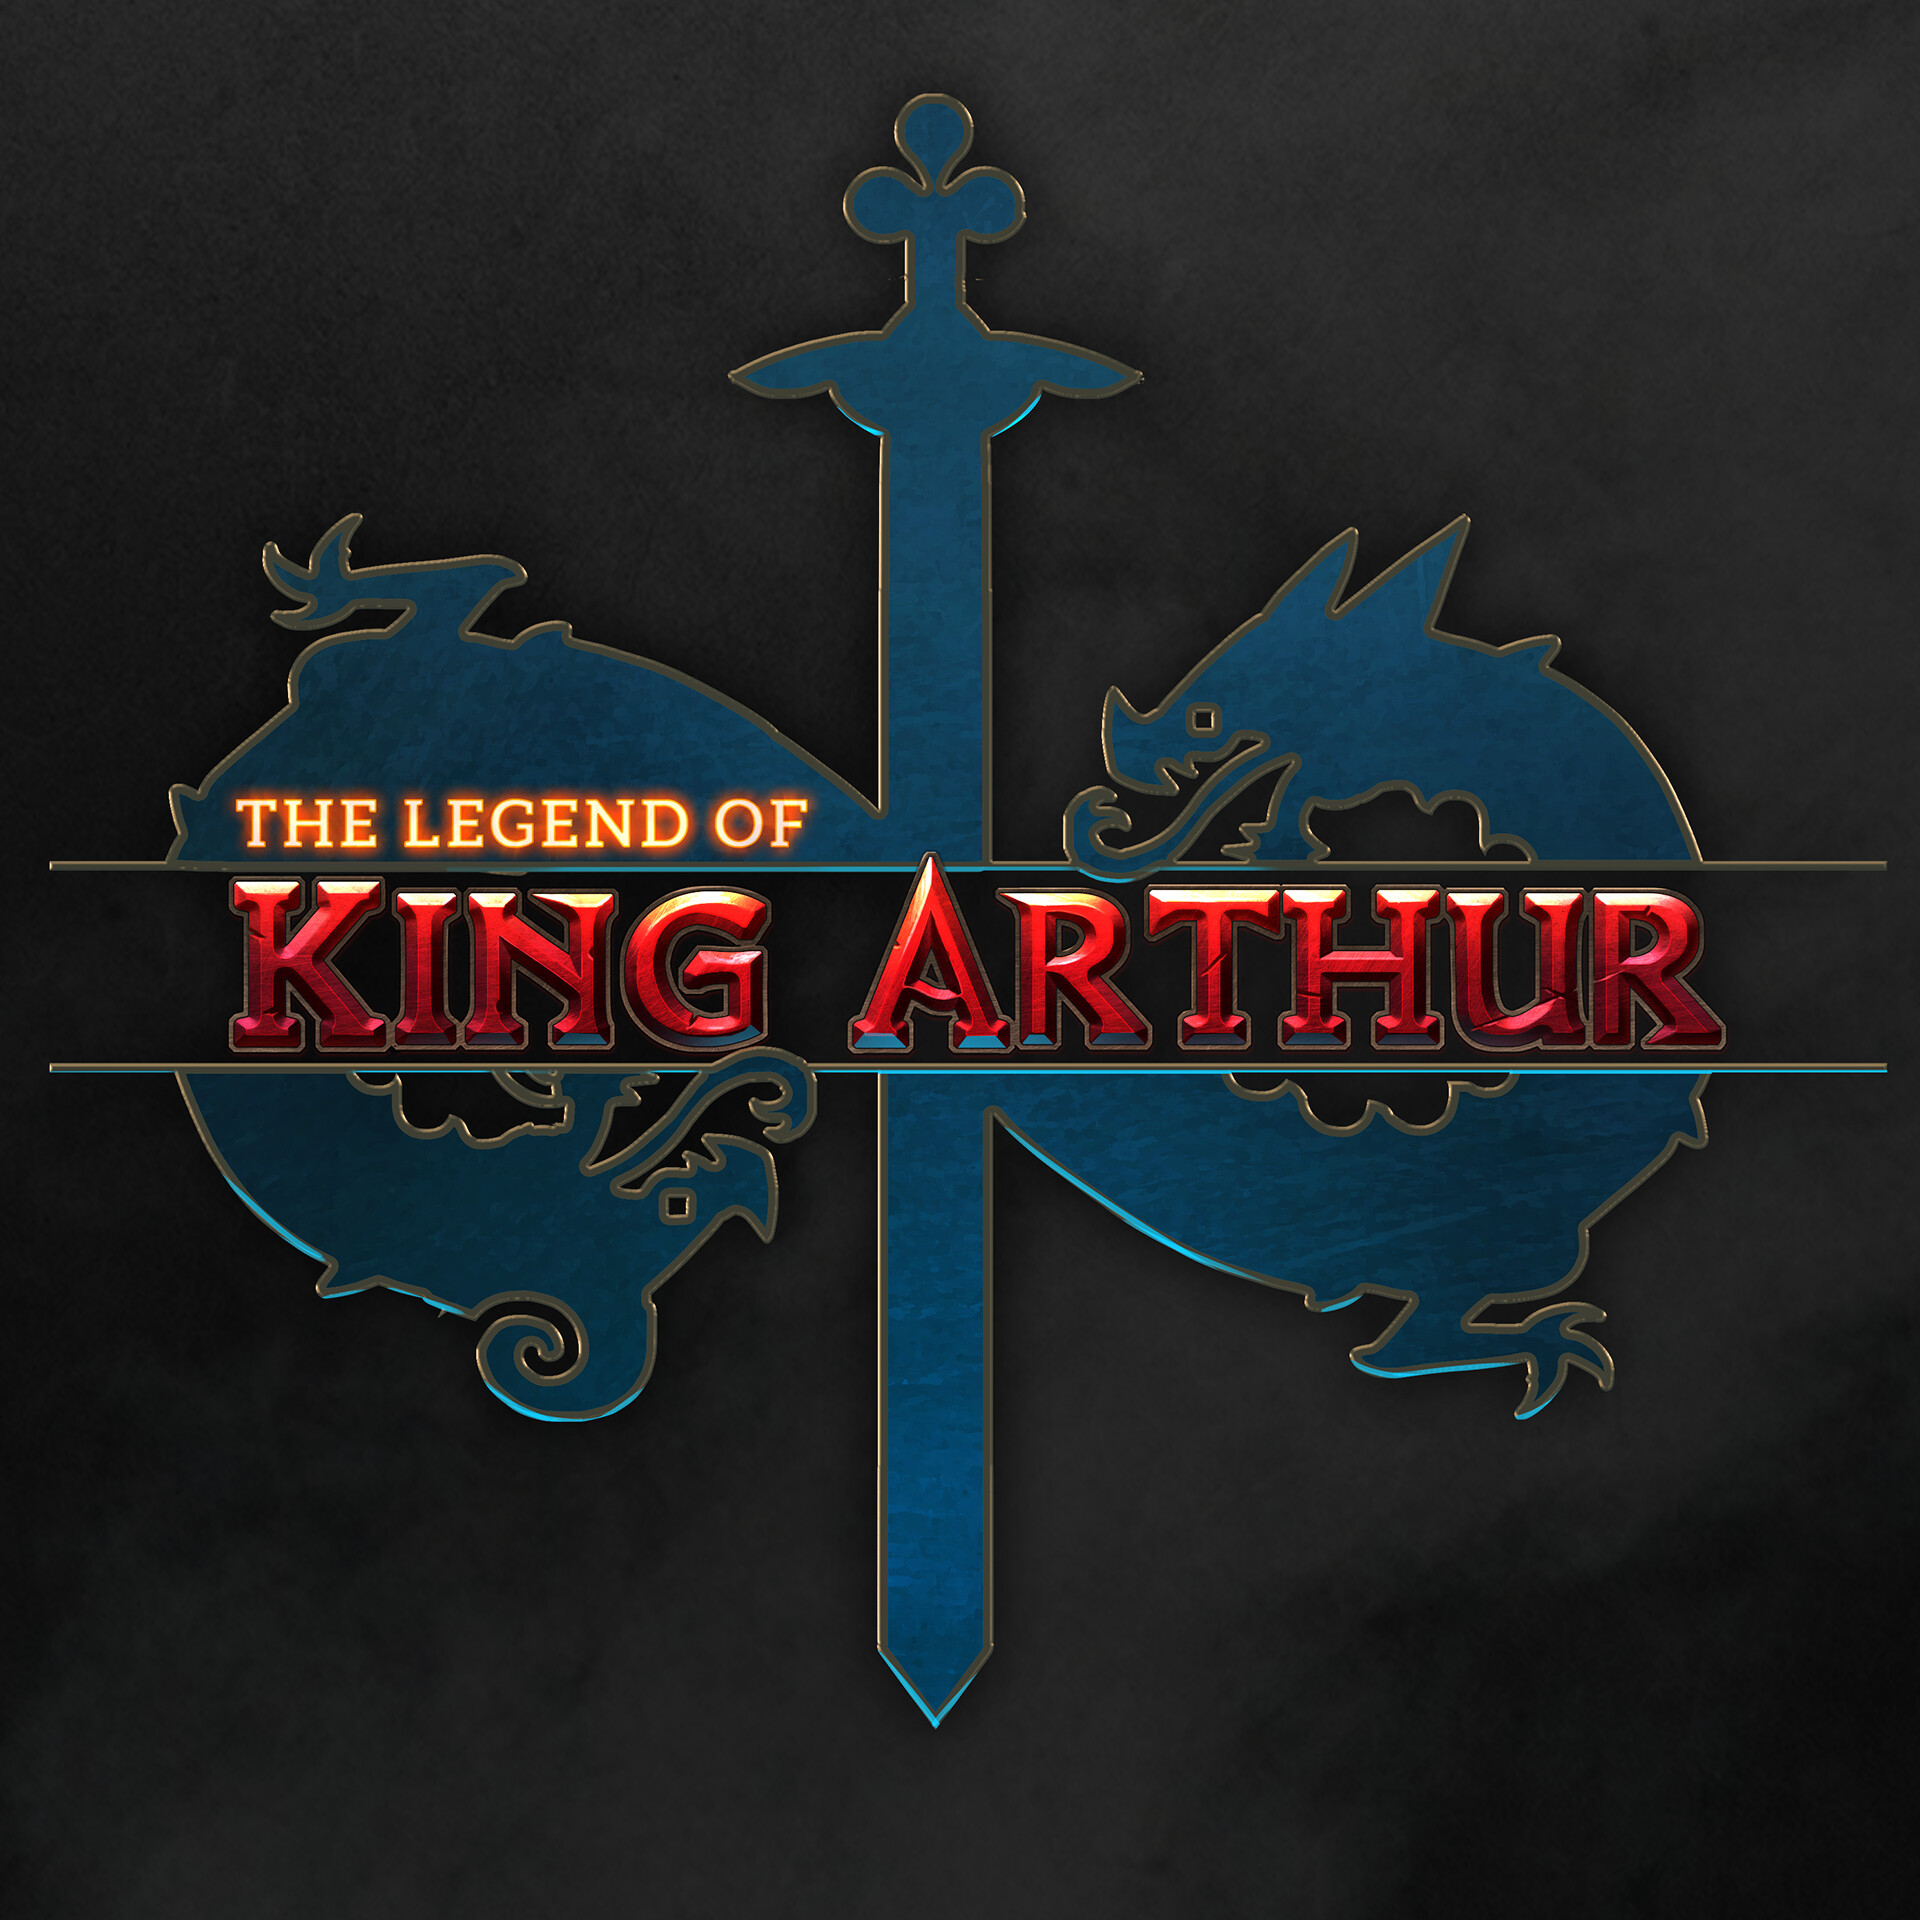 The title art using the sigil I designed for King Arthur inspired by fantasy game titles.